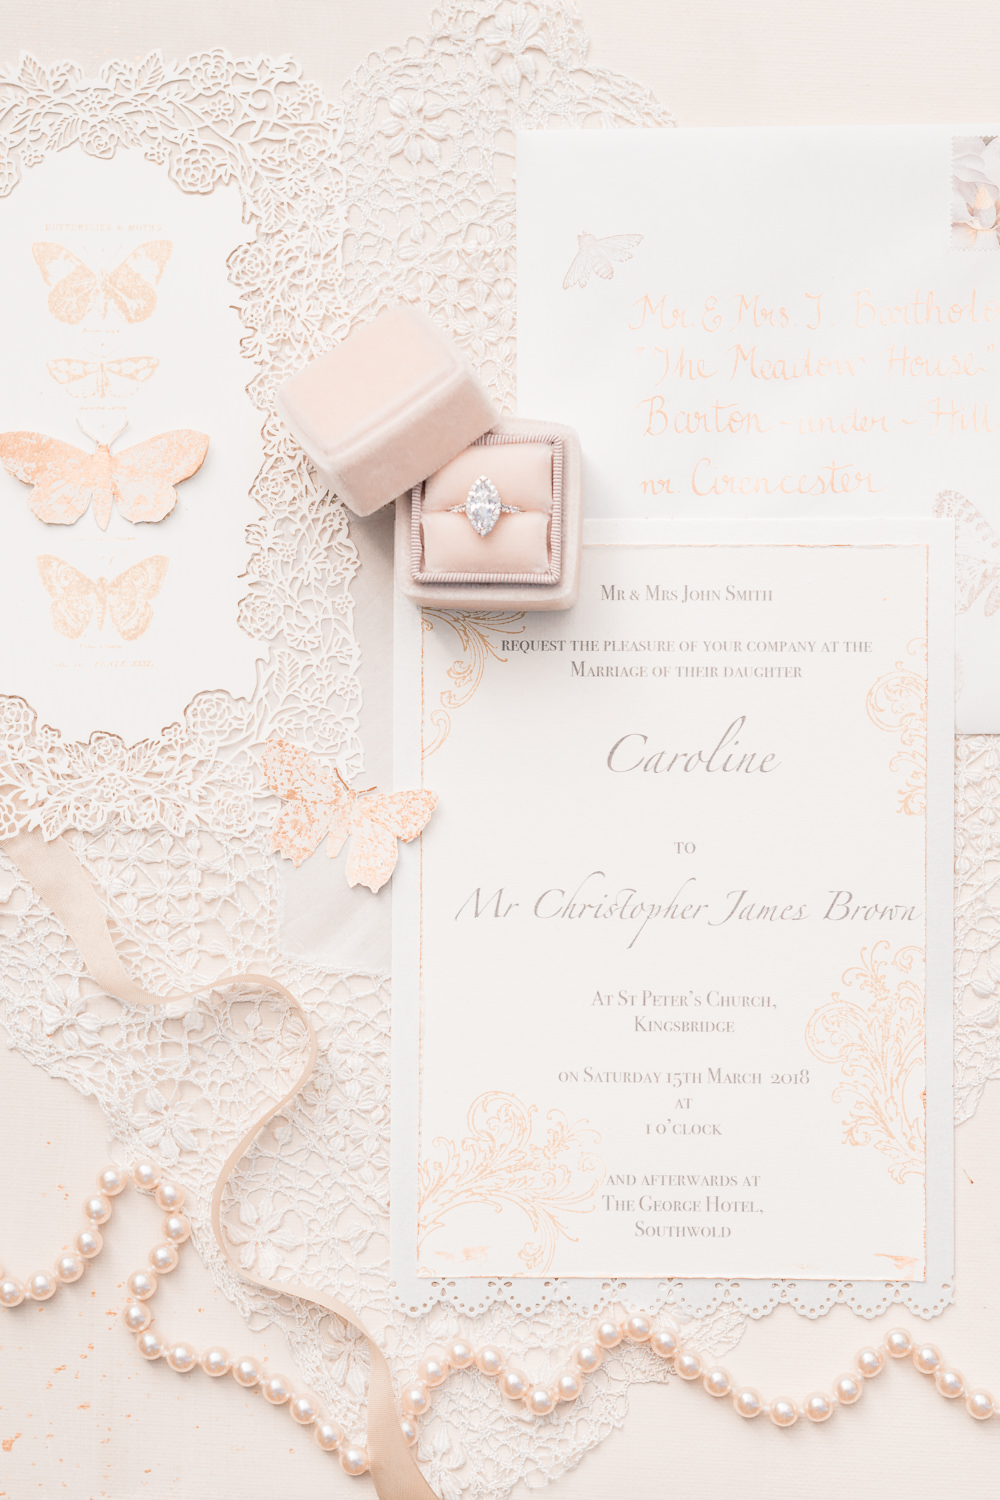 Stationery Suite Flat Lay Invites Invitations Butterlies Lace Pearls Blush Pink Golden Autumnal Wedding Ideas Joanna Briggs Photography